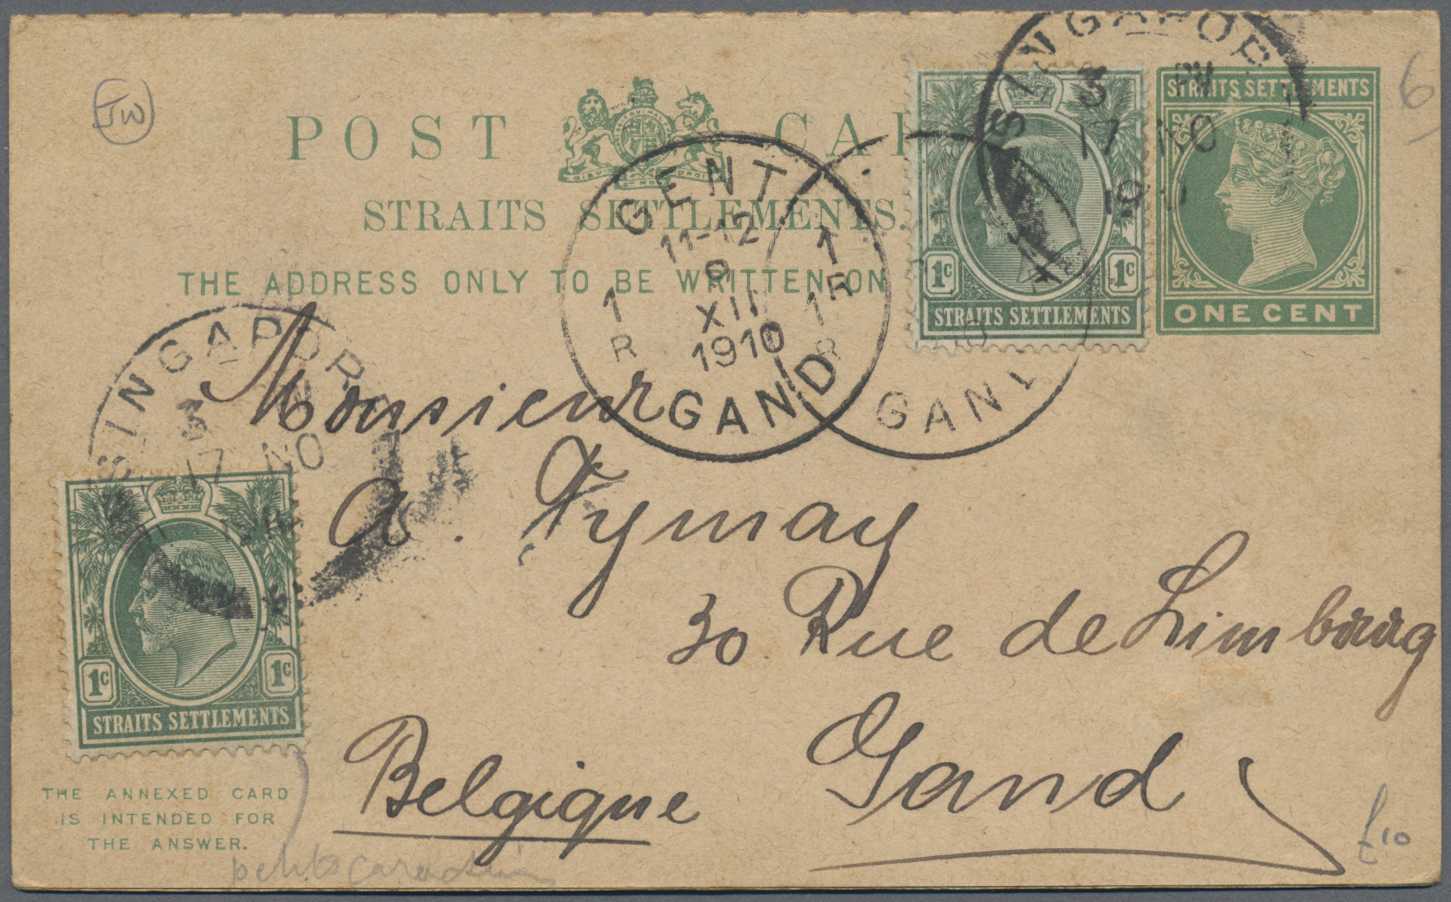 Lot 34708 - Malaiische Staaten - Straits Settlements  -  Auktionshaus Christoph Gärtner GmbH & Co. KG Sale #44 Collections Germany